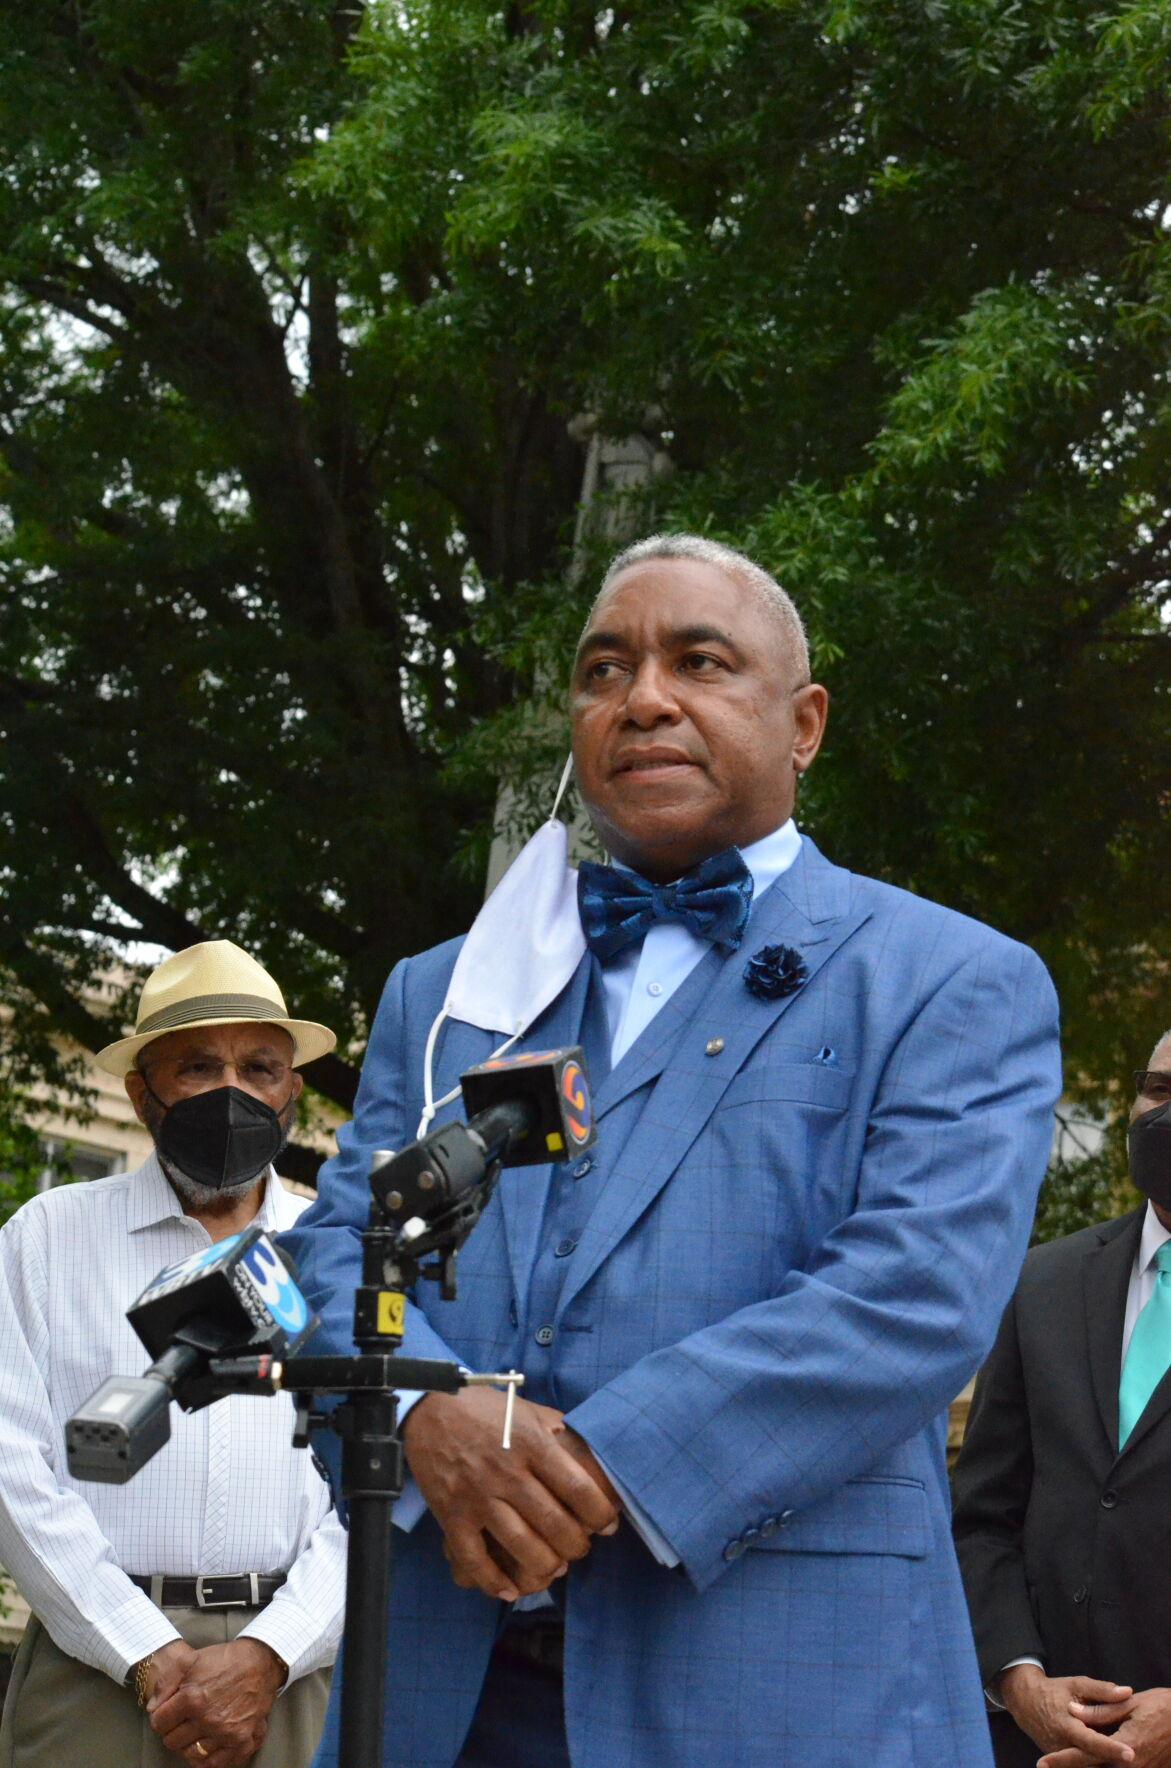 Todd Scott, the president of the Statesville chapter of the NAACP, speaks near the Iredell County Confederate Memorial Statue during a press conference on Tuesday in Statesville.